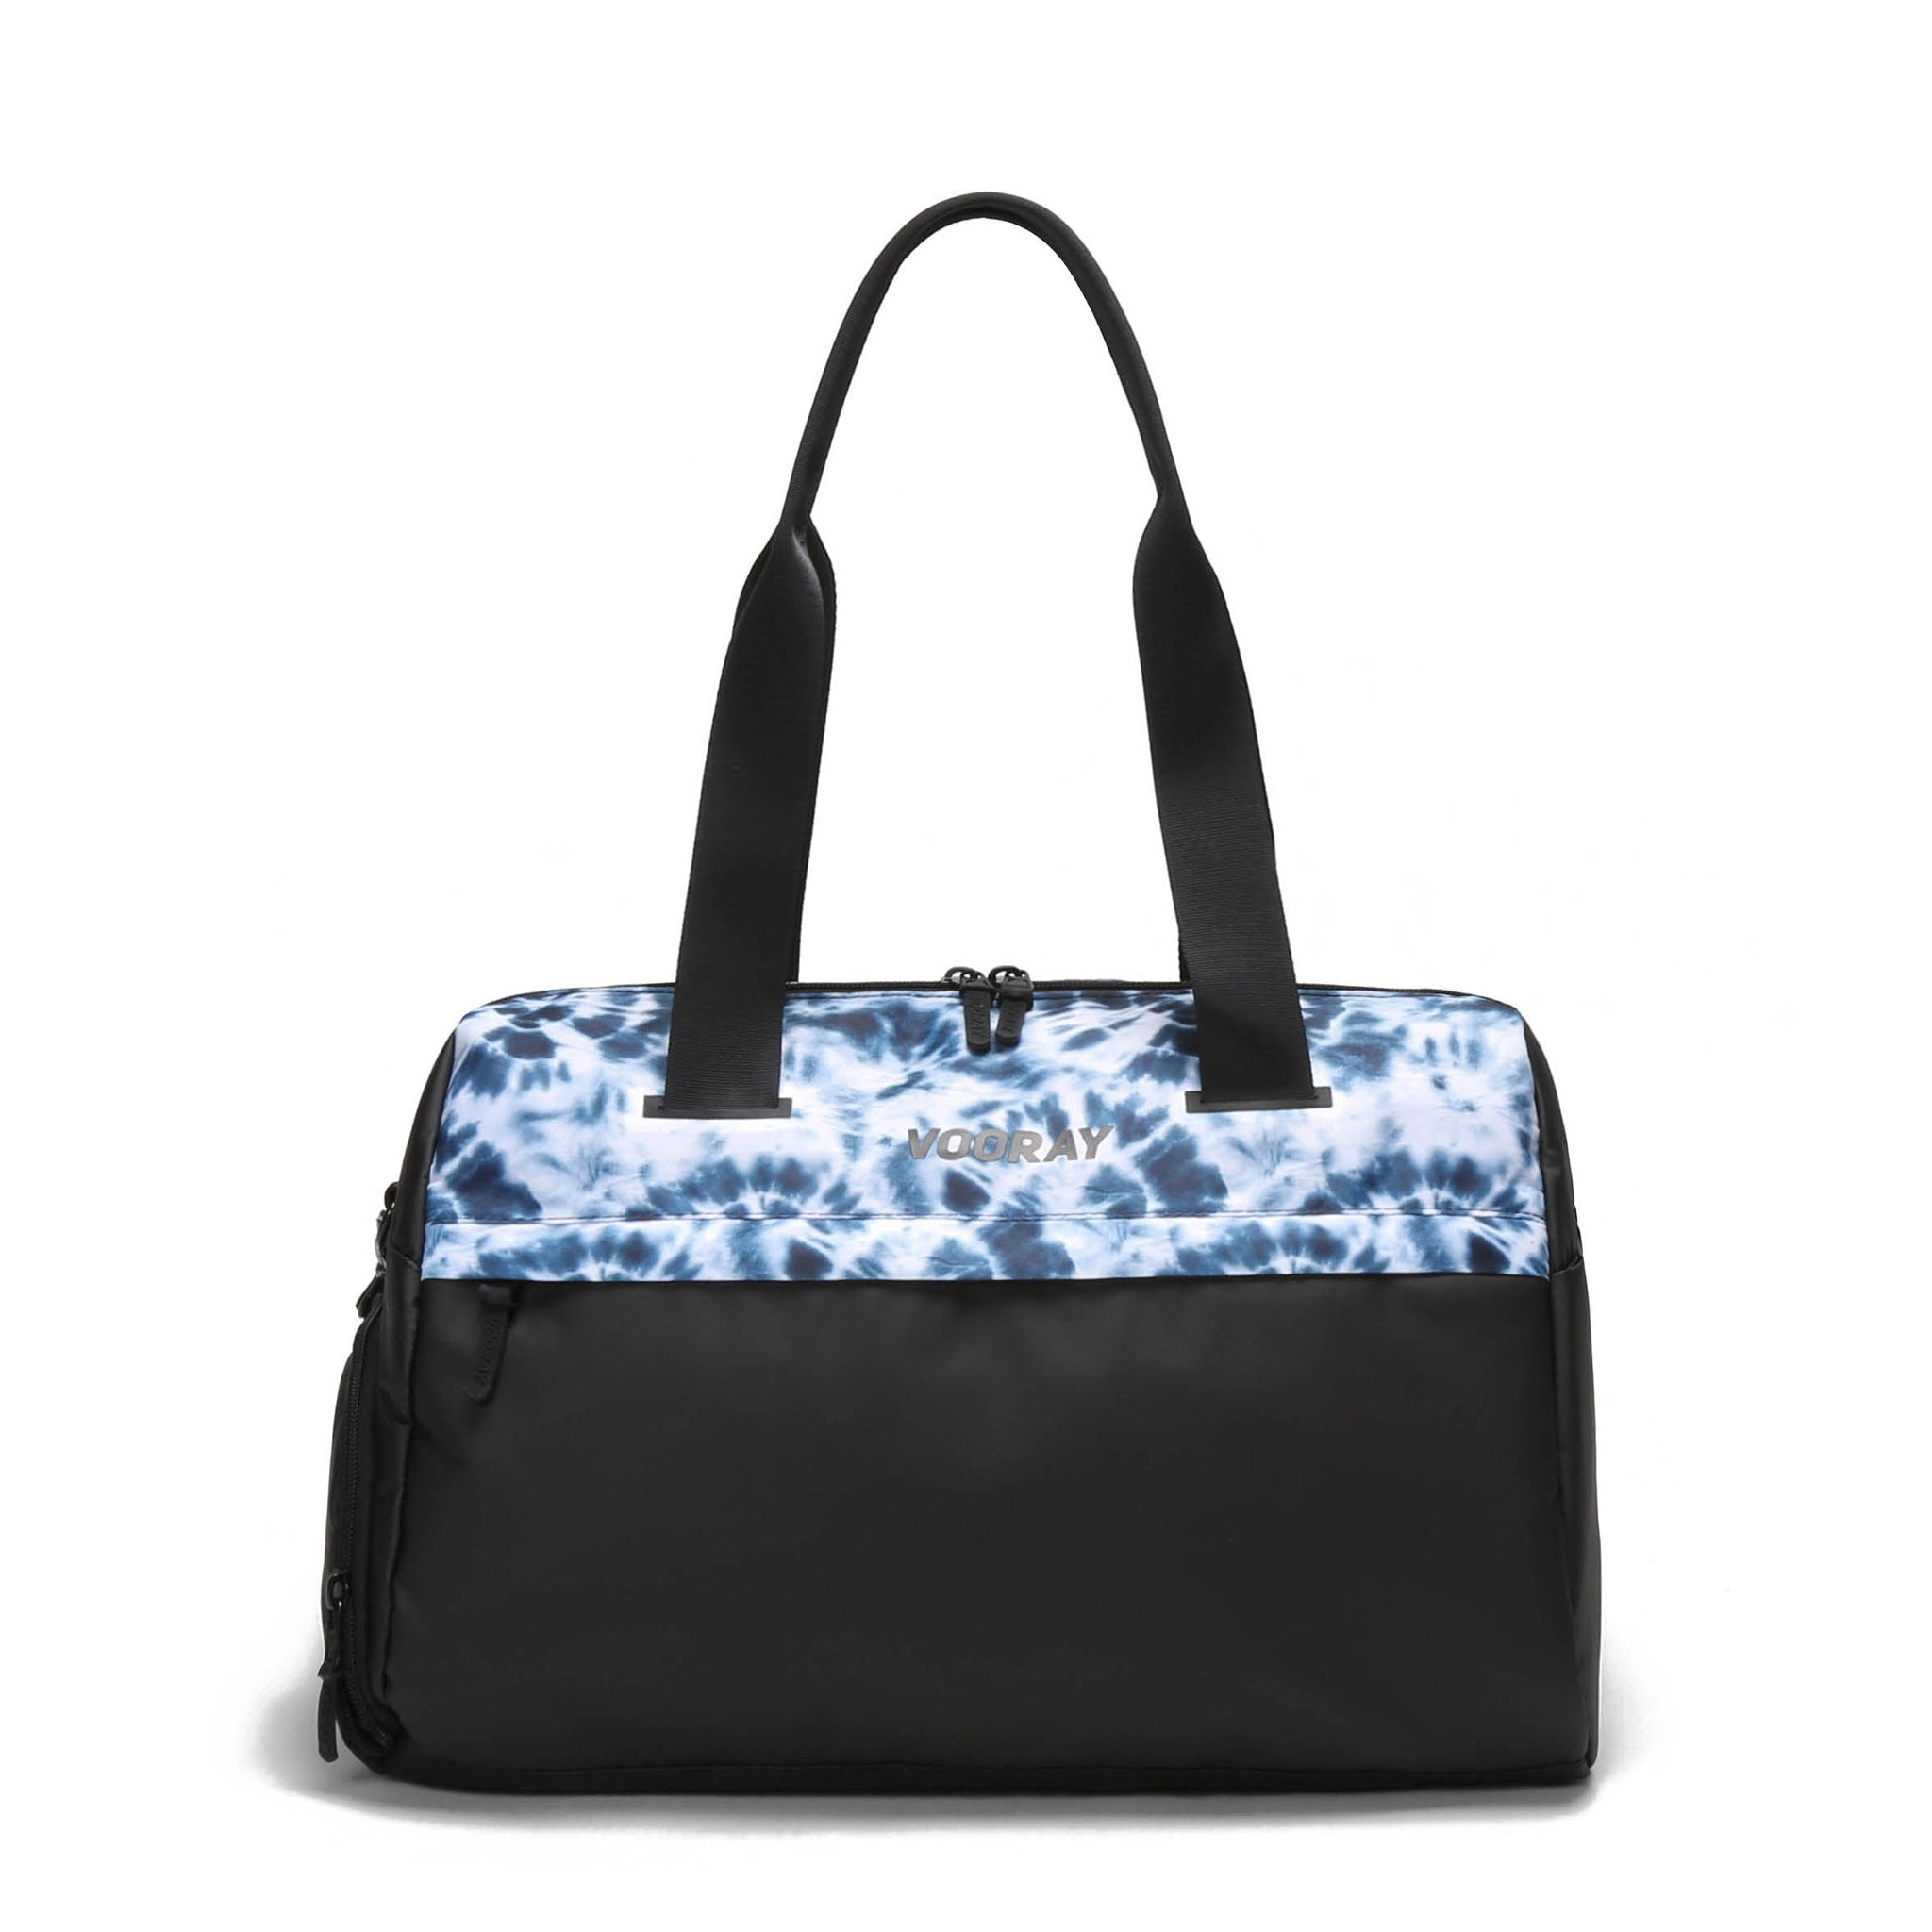 Trainer Duffel Bag, Tie Dye